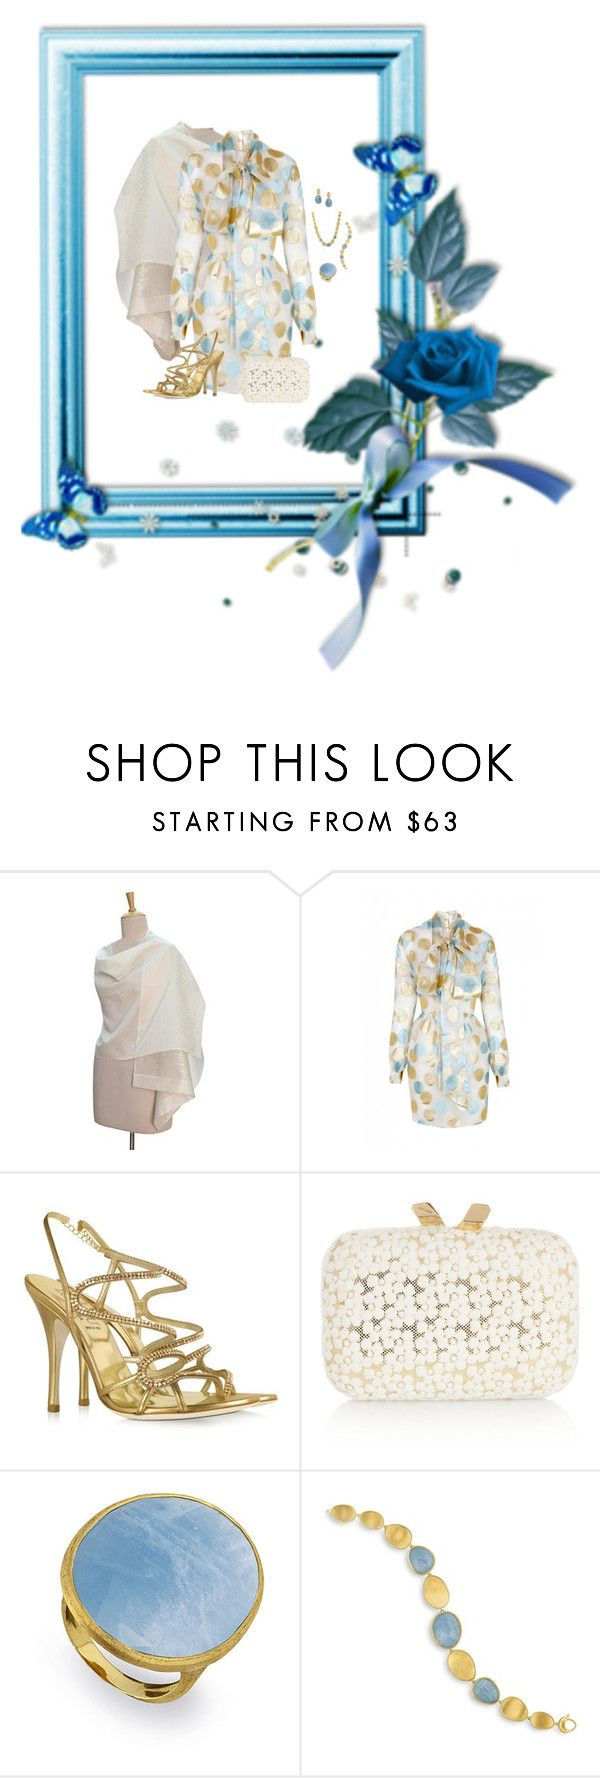 """""""Metallic Polka Dots (1075)"""" by trufflelover ❤ liked on Polyvore featuring NOVICA, The 2nd Skin Co., Loriblu, KOTUR and Marco Bicego"""